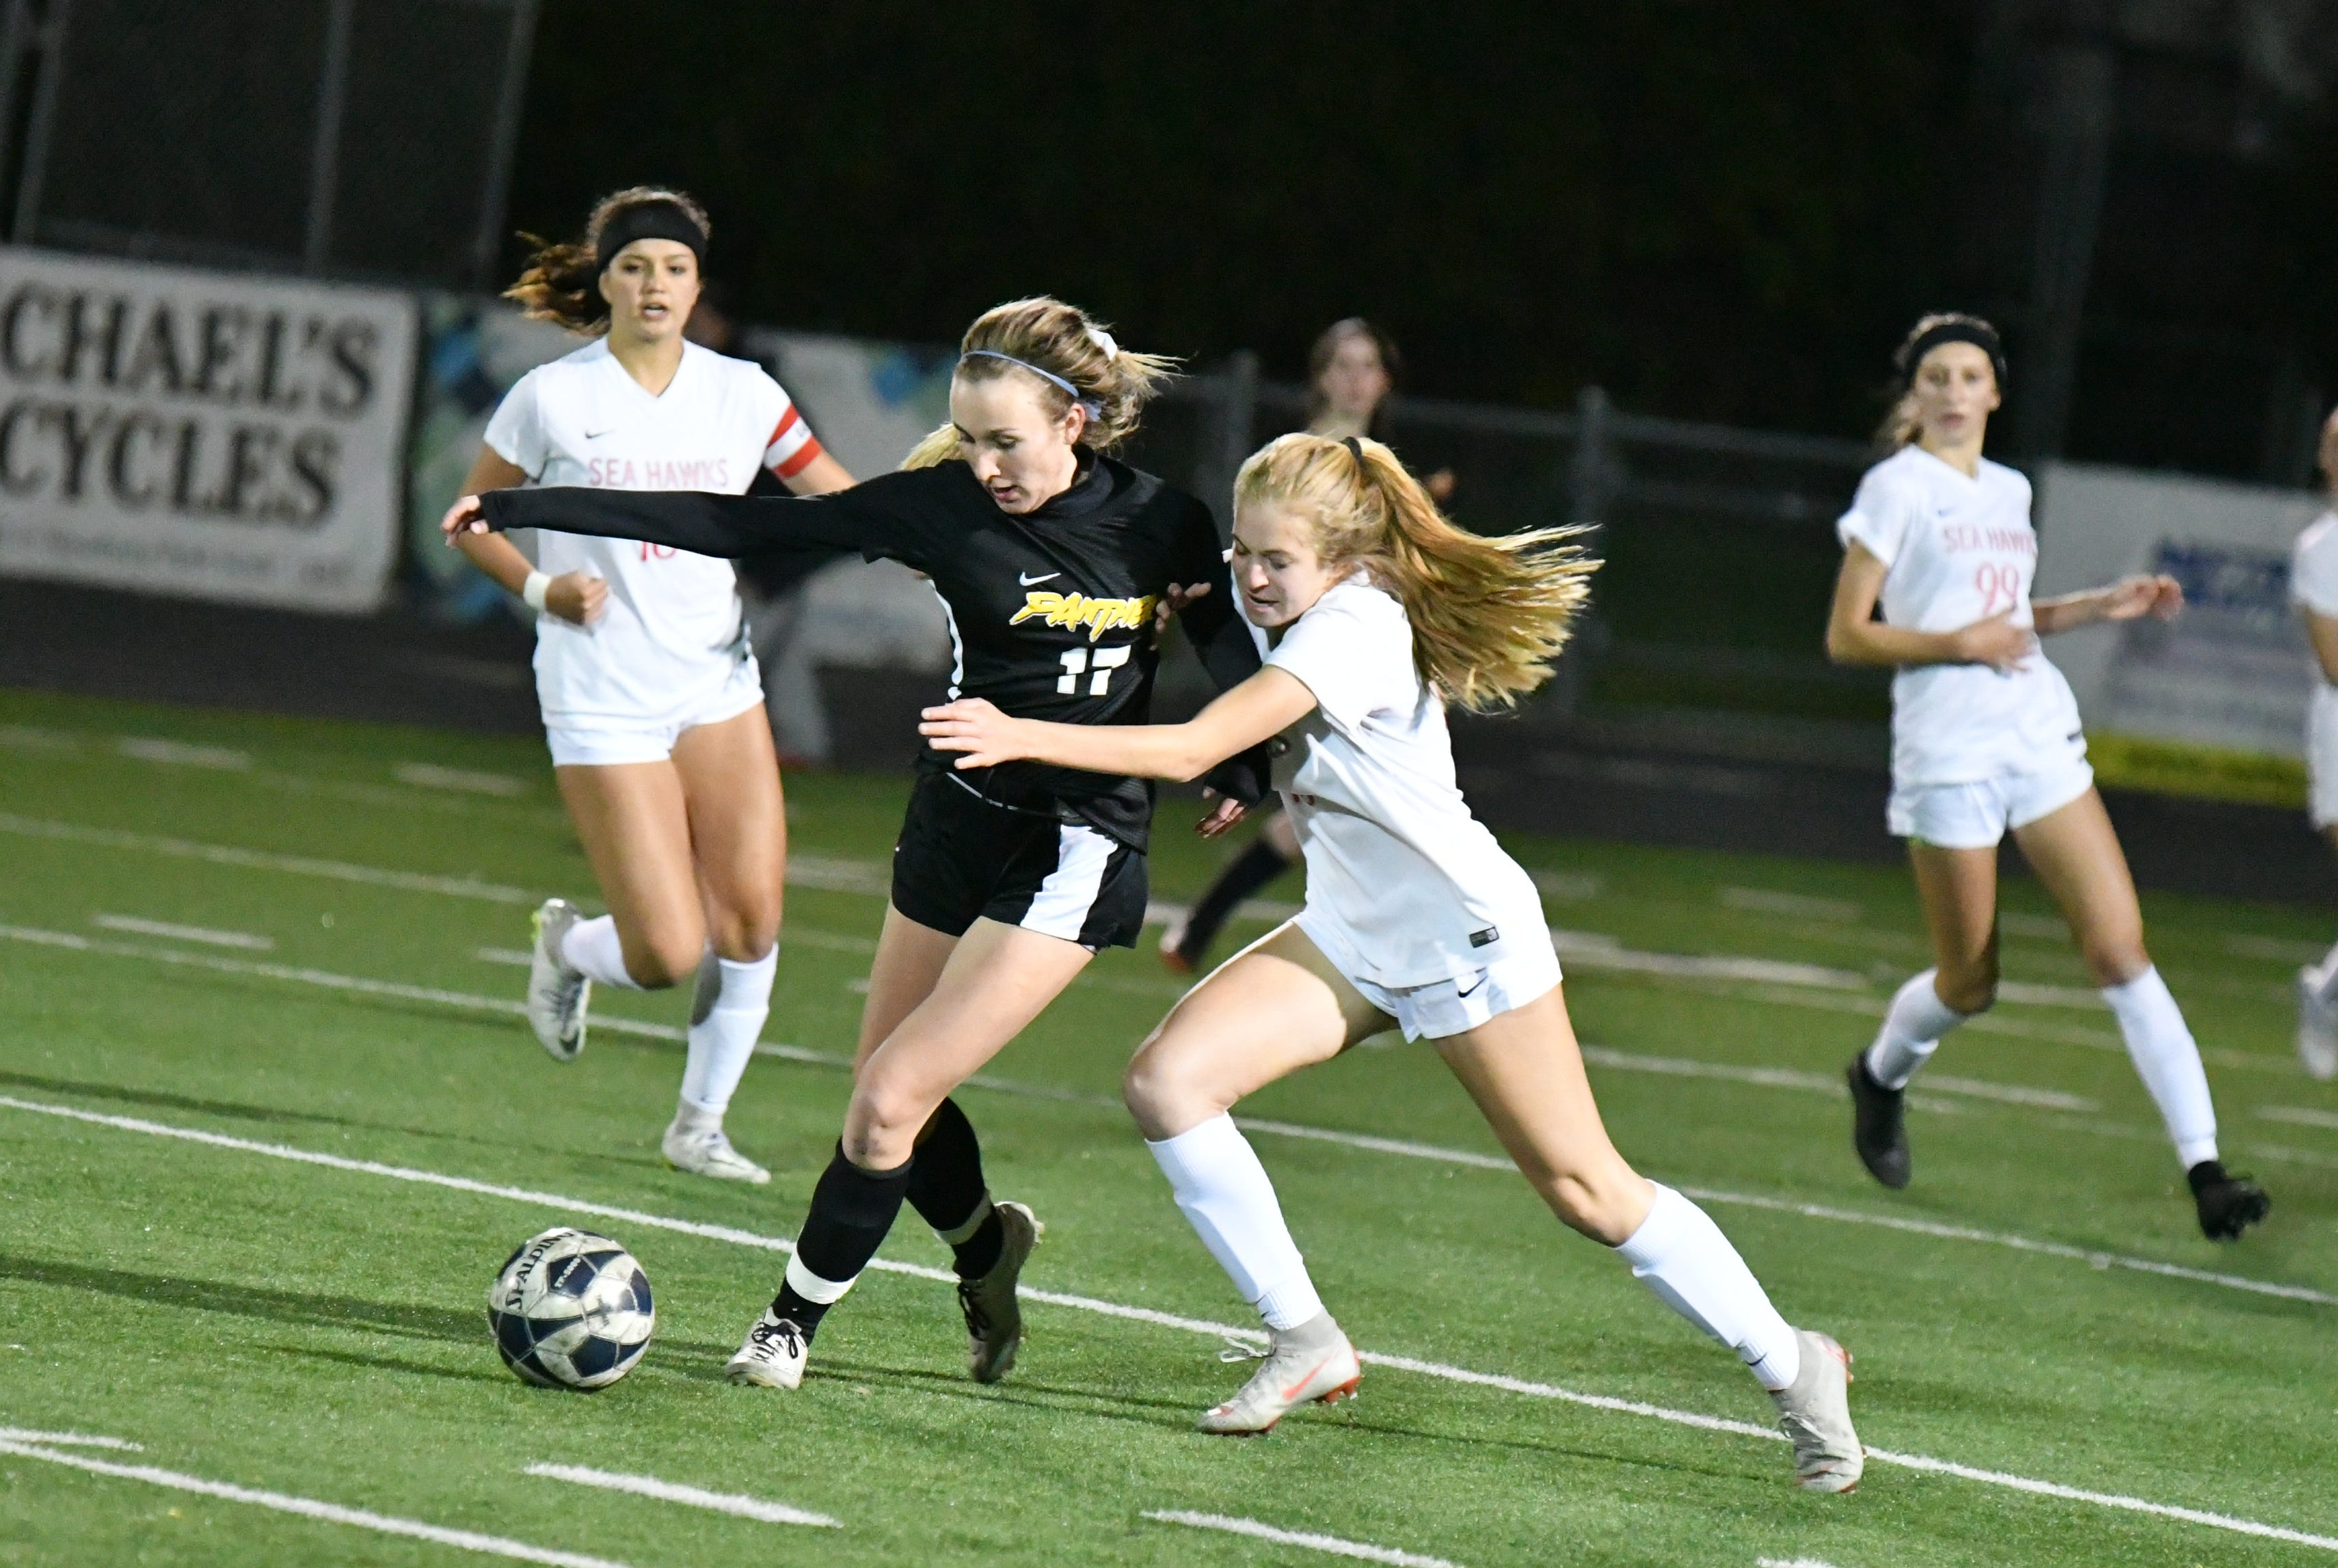 Newbury Park senior Kaitlyn McKeown, left, holds off a defender in Friday night's CIF-Southern Section Division 2 second-round match with Redondo Union.  Newbury Park edged Redondo Union 4-3 on PKs after a scoreless draw.